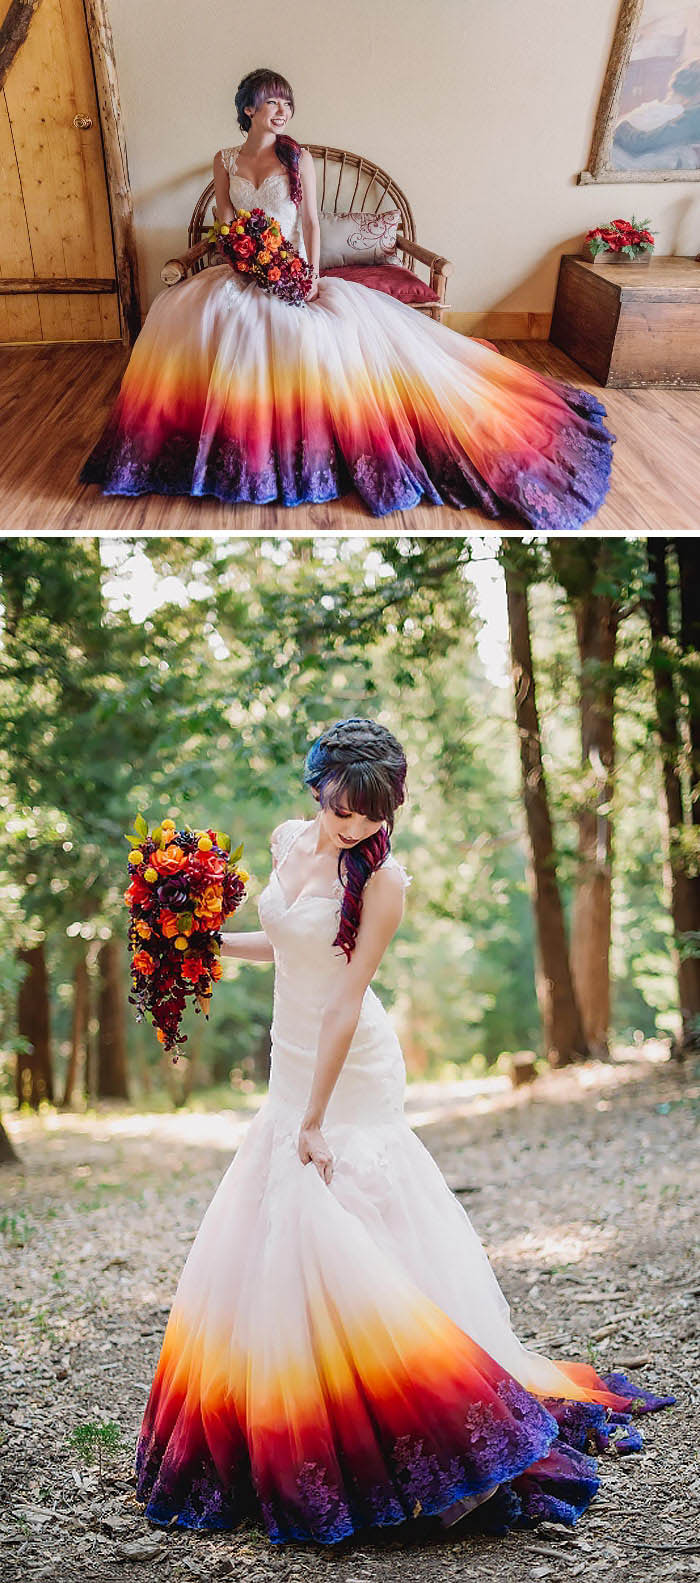 dip-dye-wedding-dress-trend-vinegret (15)